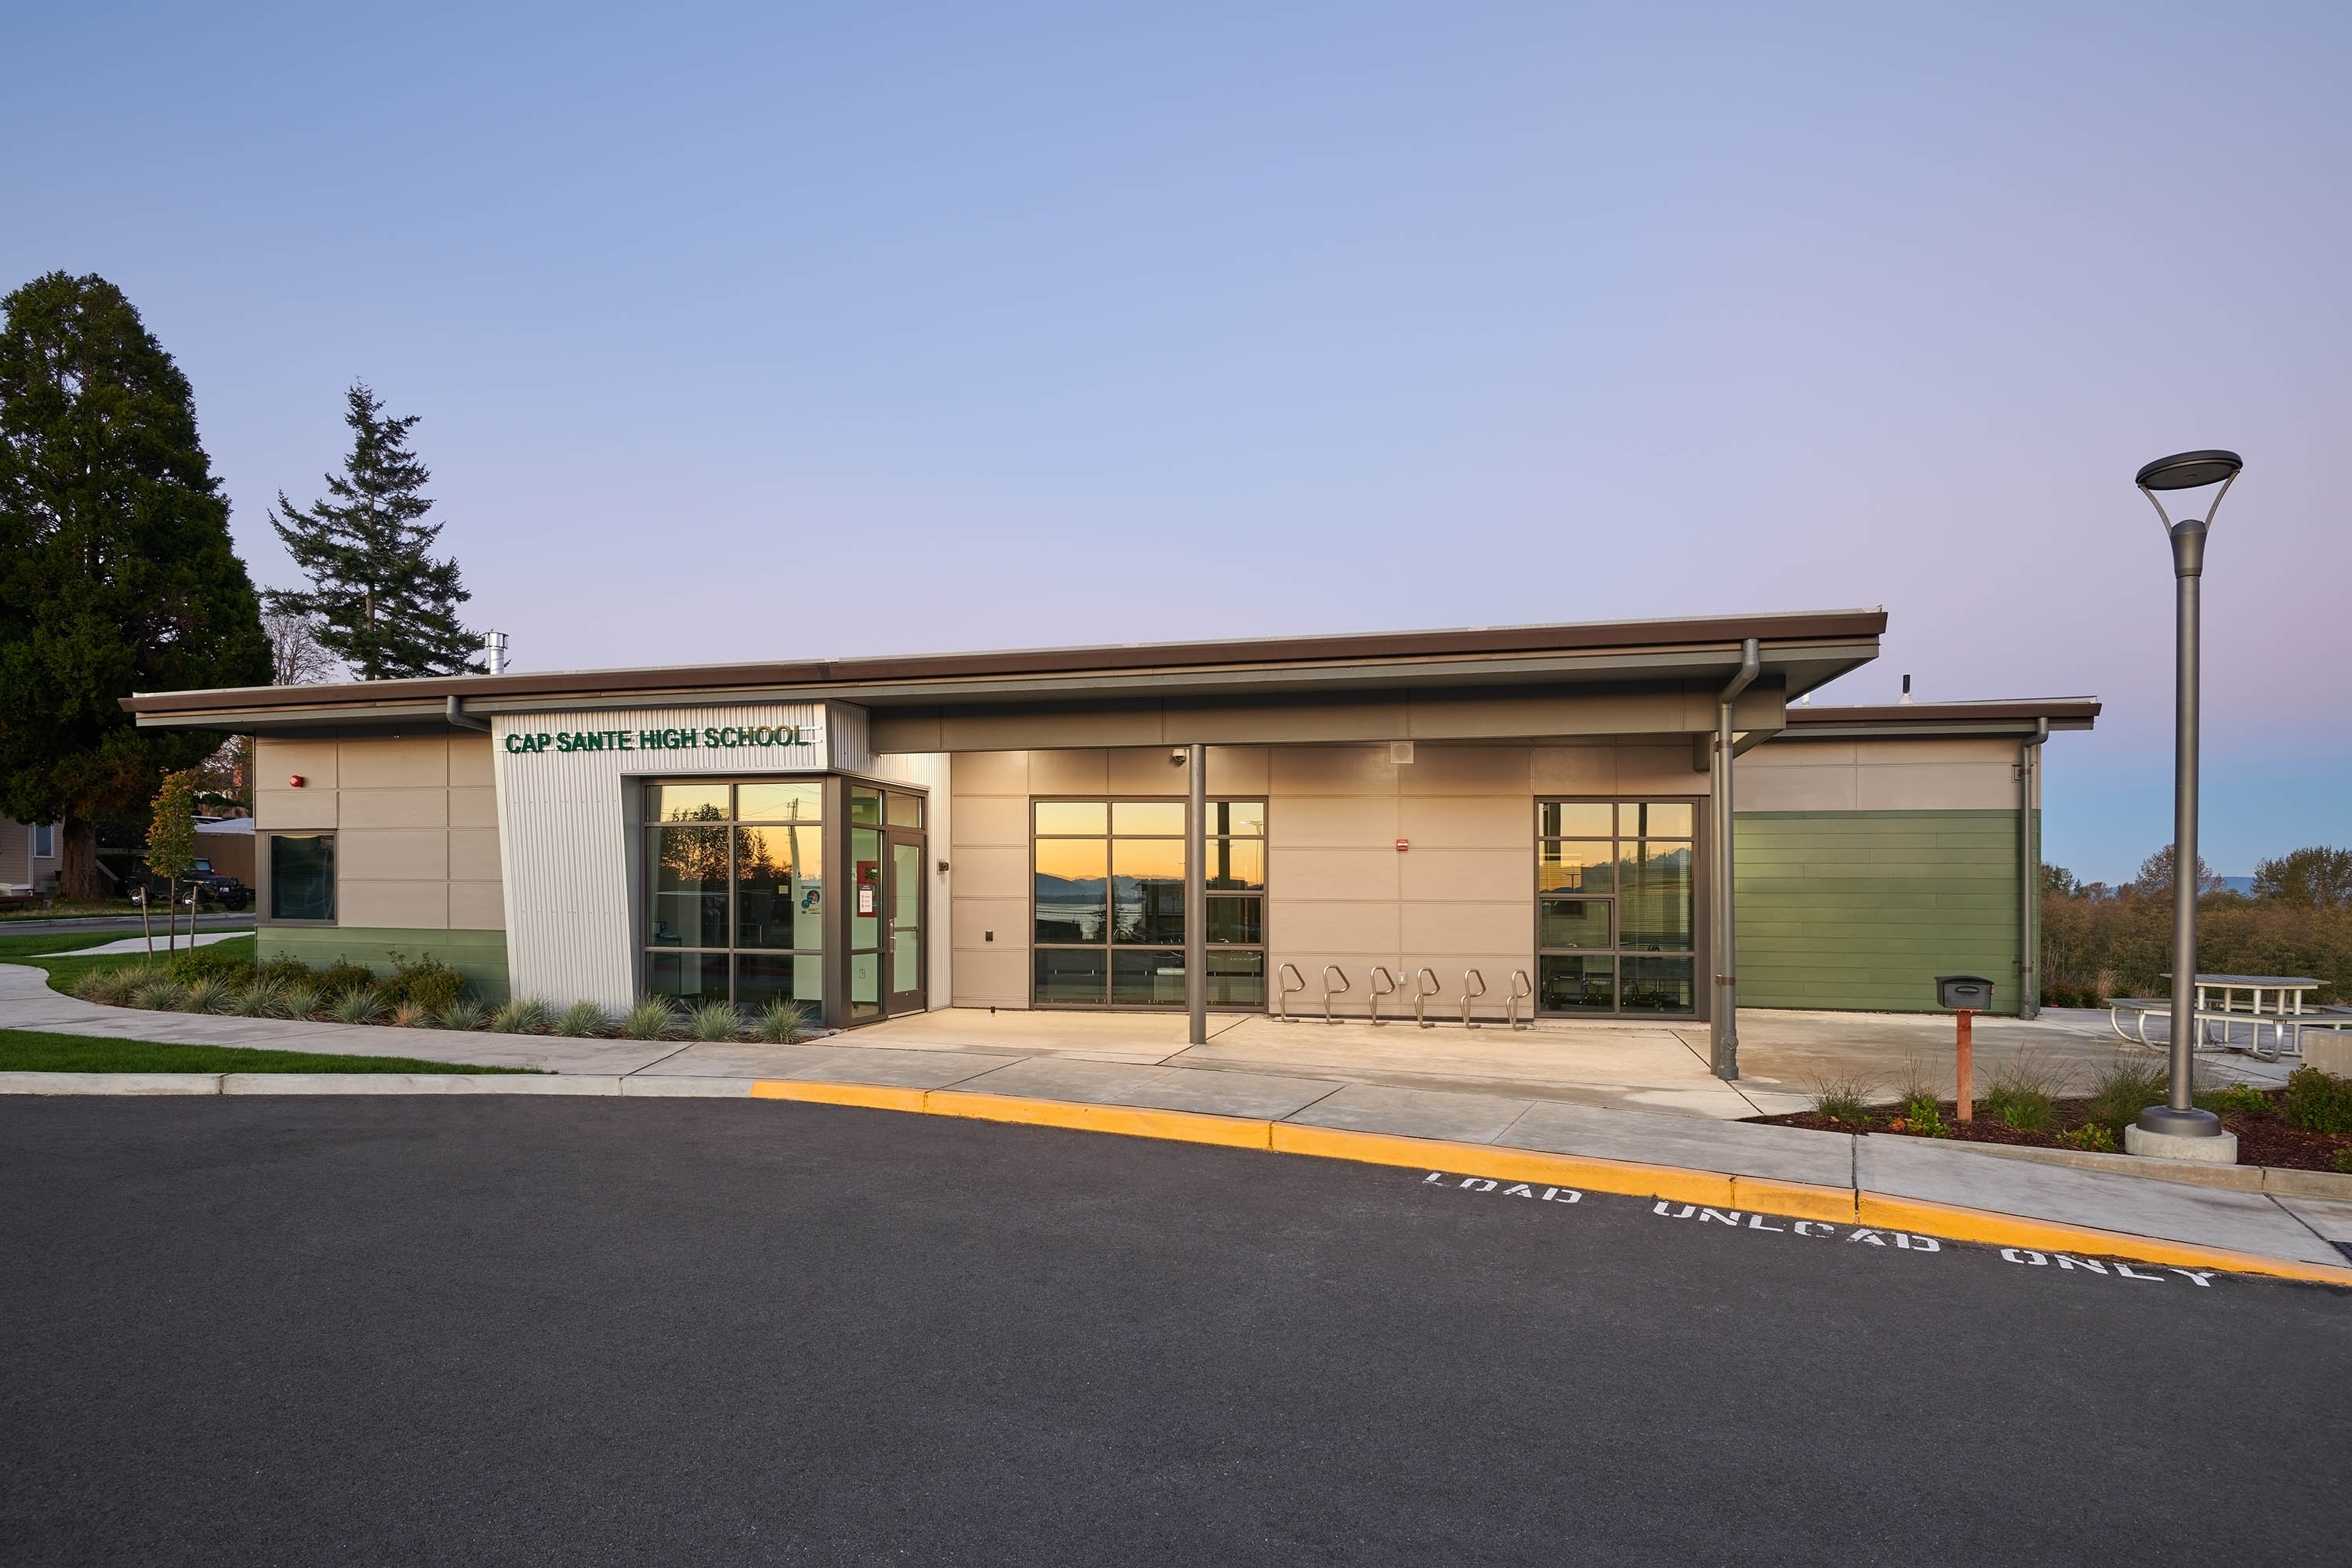 Exterior wide photo of the school and it's entry way.